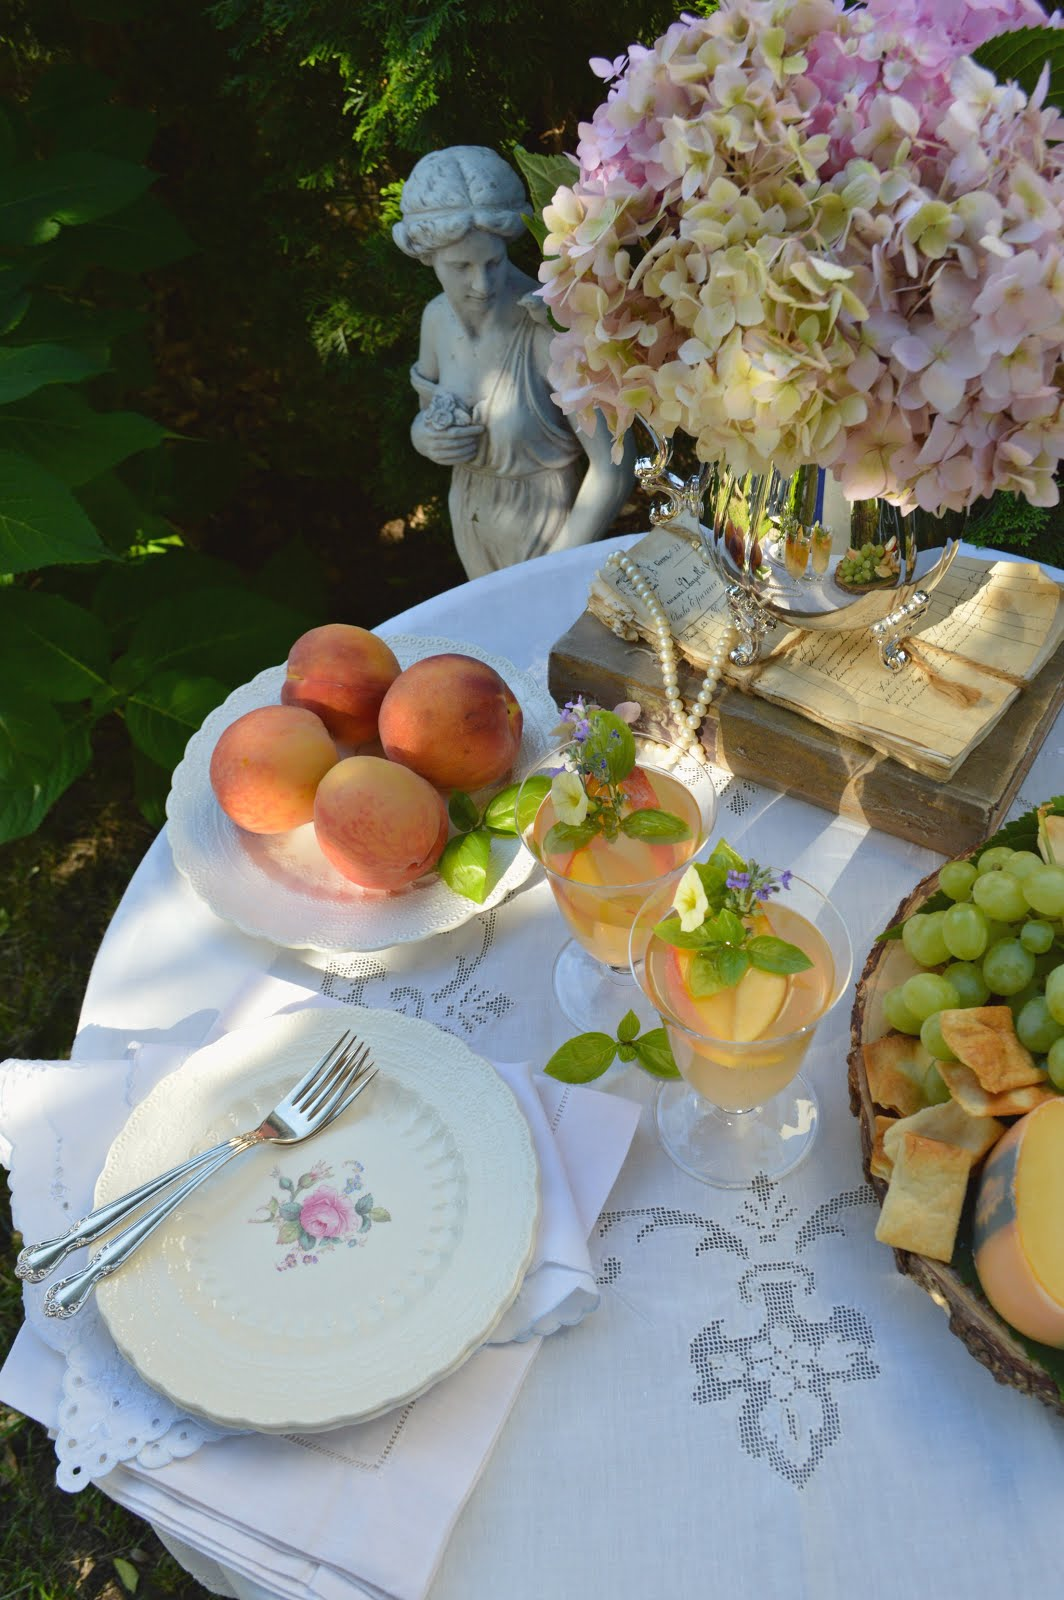 Romantic Homes Magazine Article - 5 Tips For Intimate and Effortless Garden Entertaining